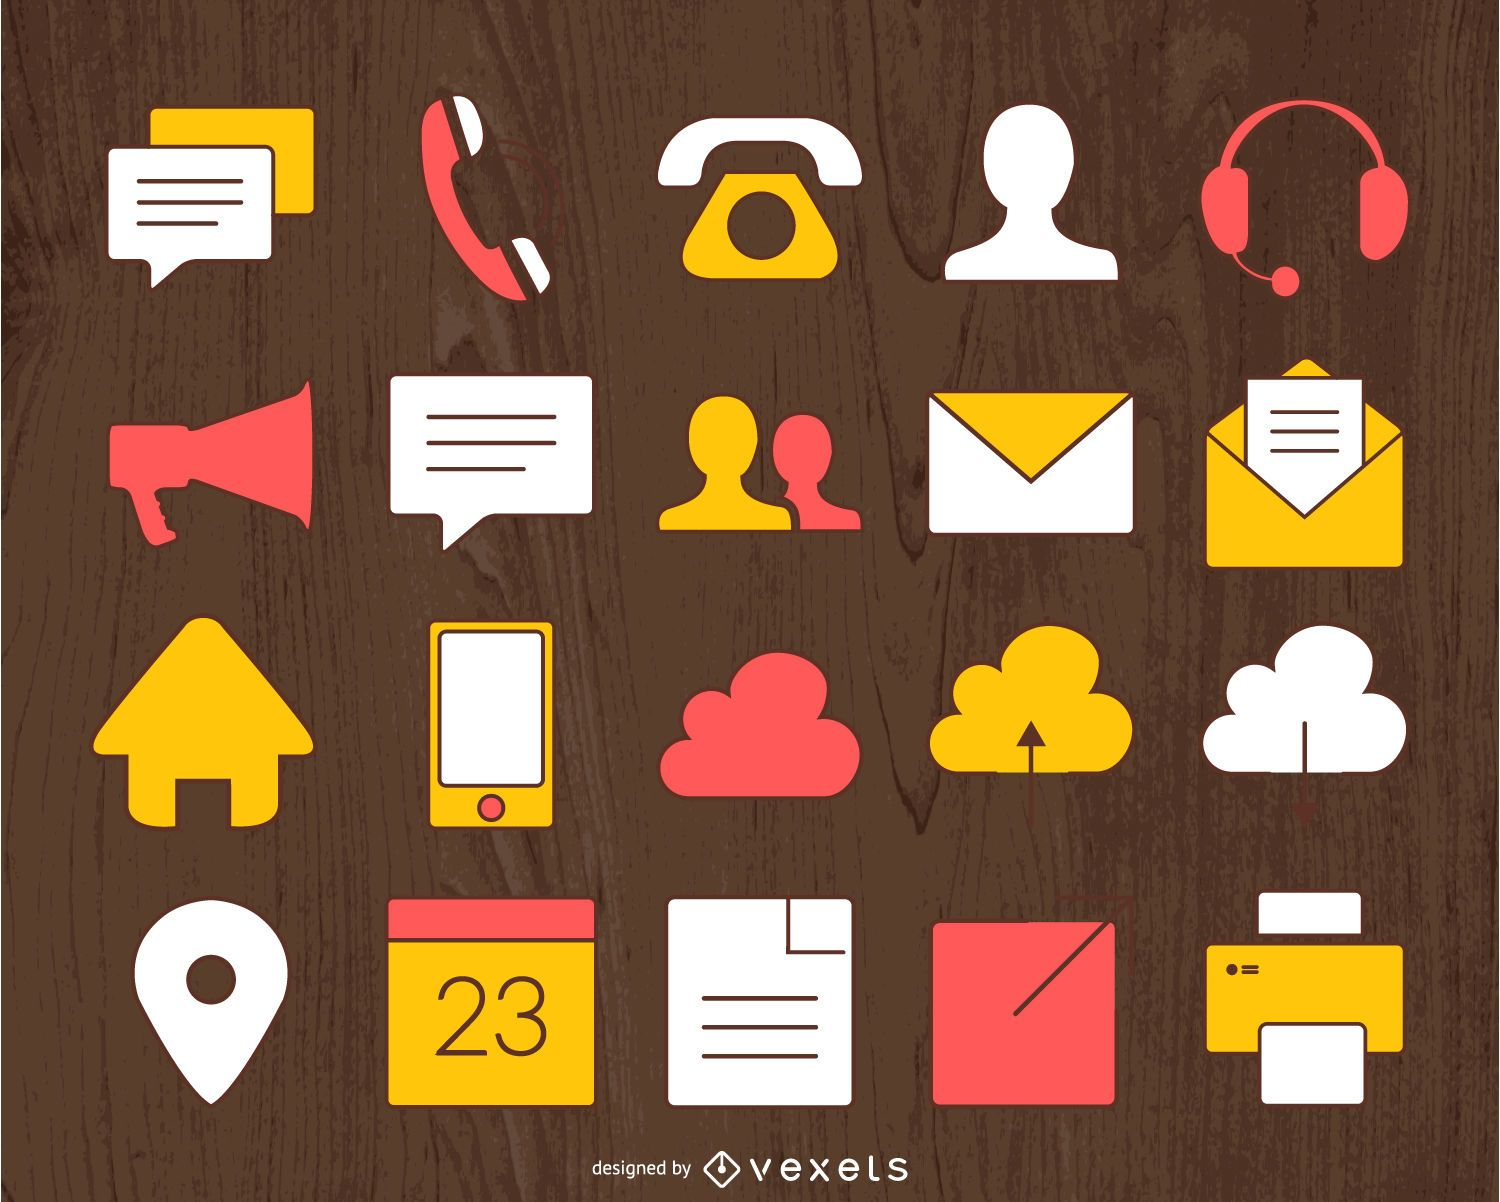 Illustrated business contact icon set